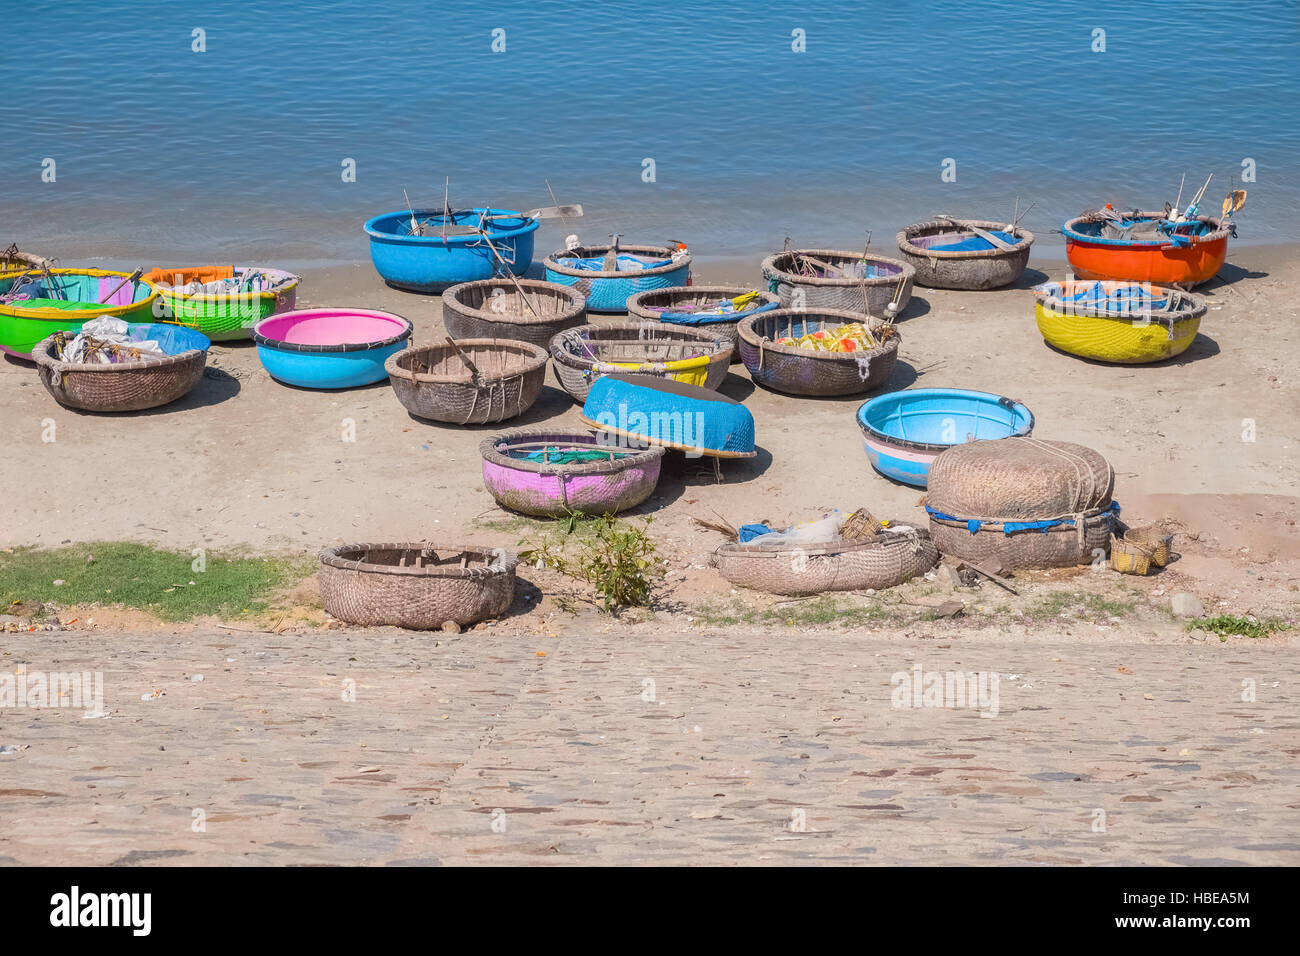 Colorful traditional boats in fishing village, Mui Ne Binh Thuan Province Vietnam Southeast Asia. Round basket boats, - Stock Image